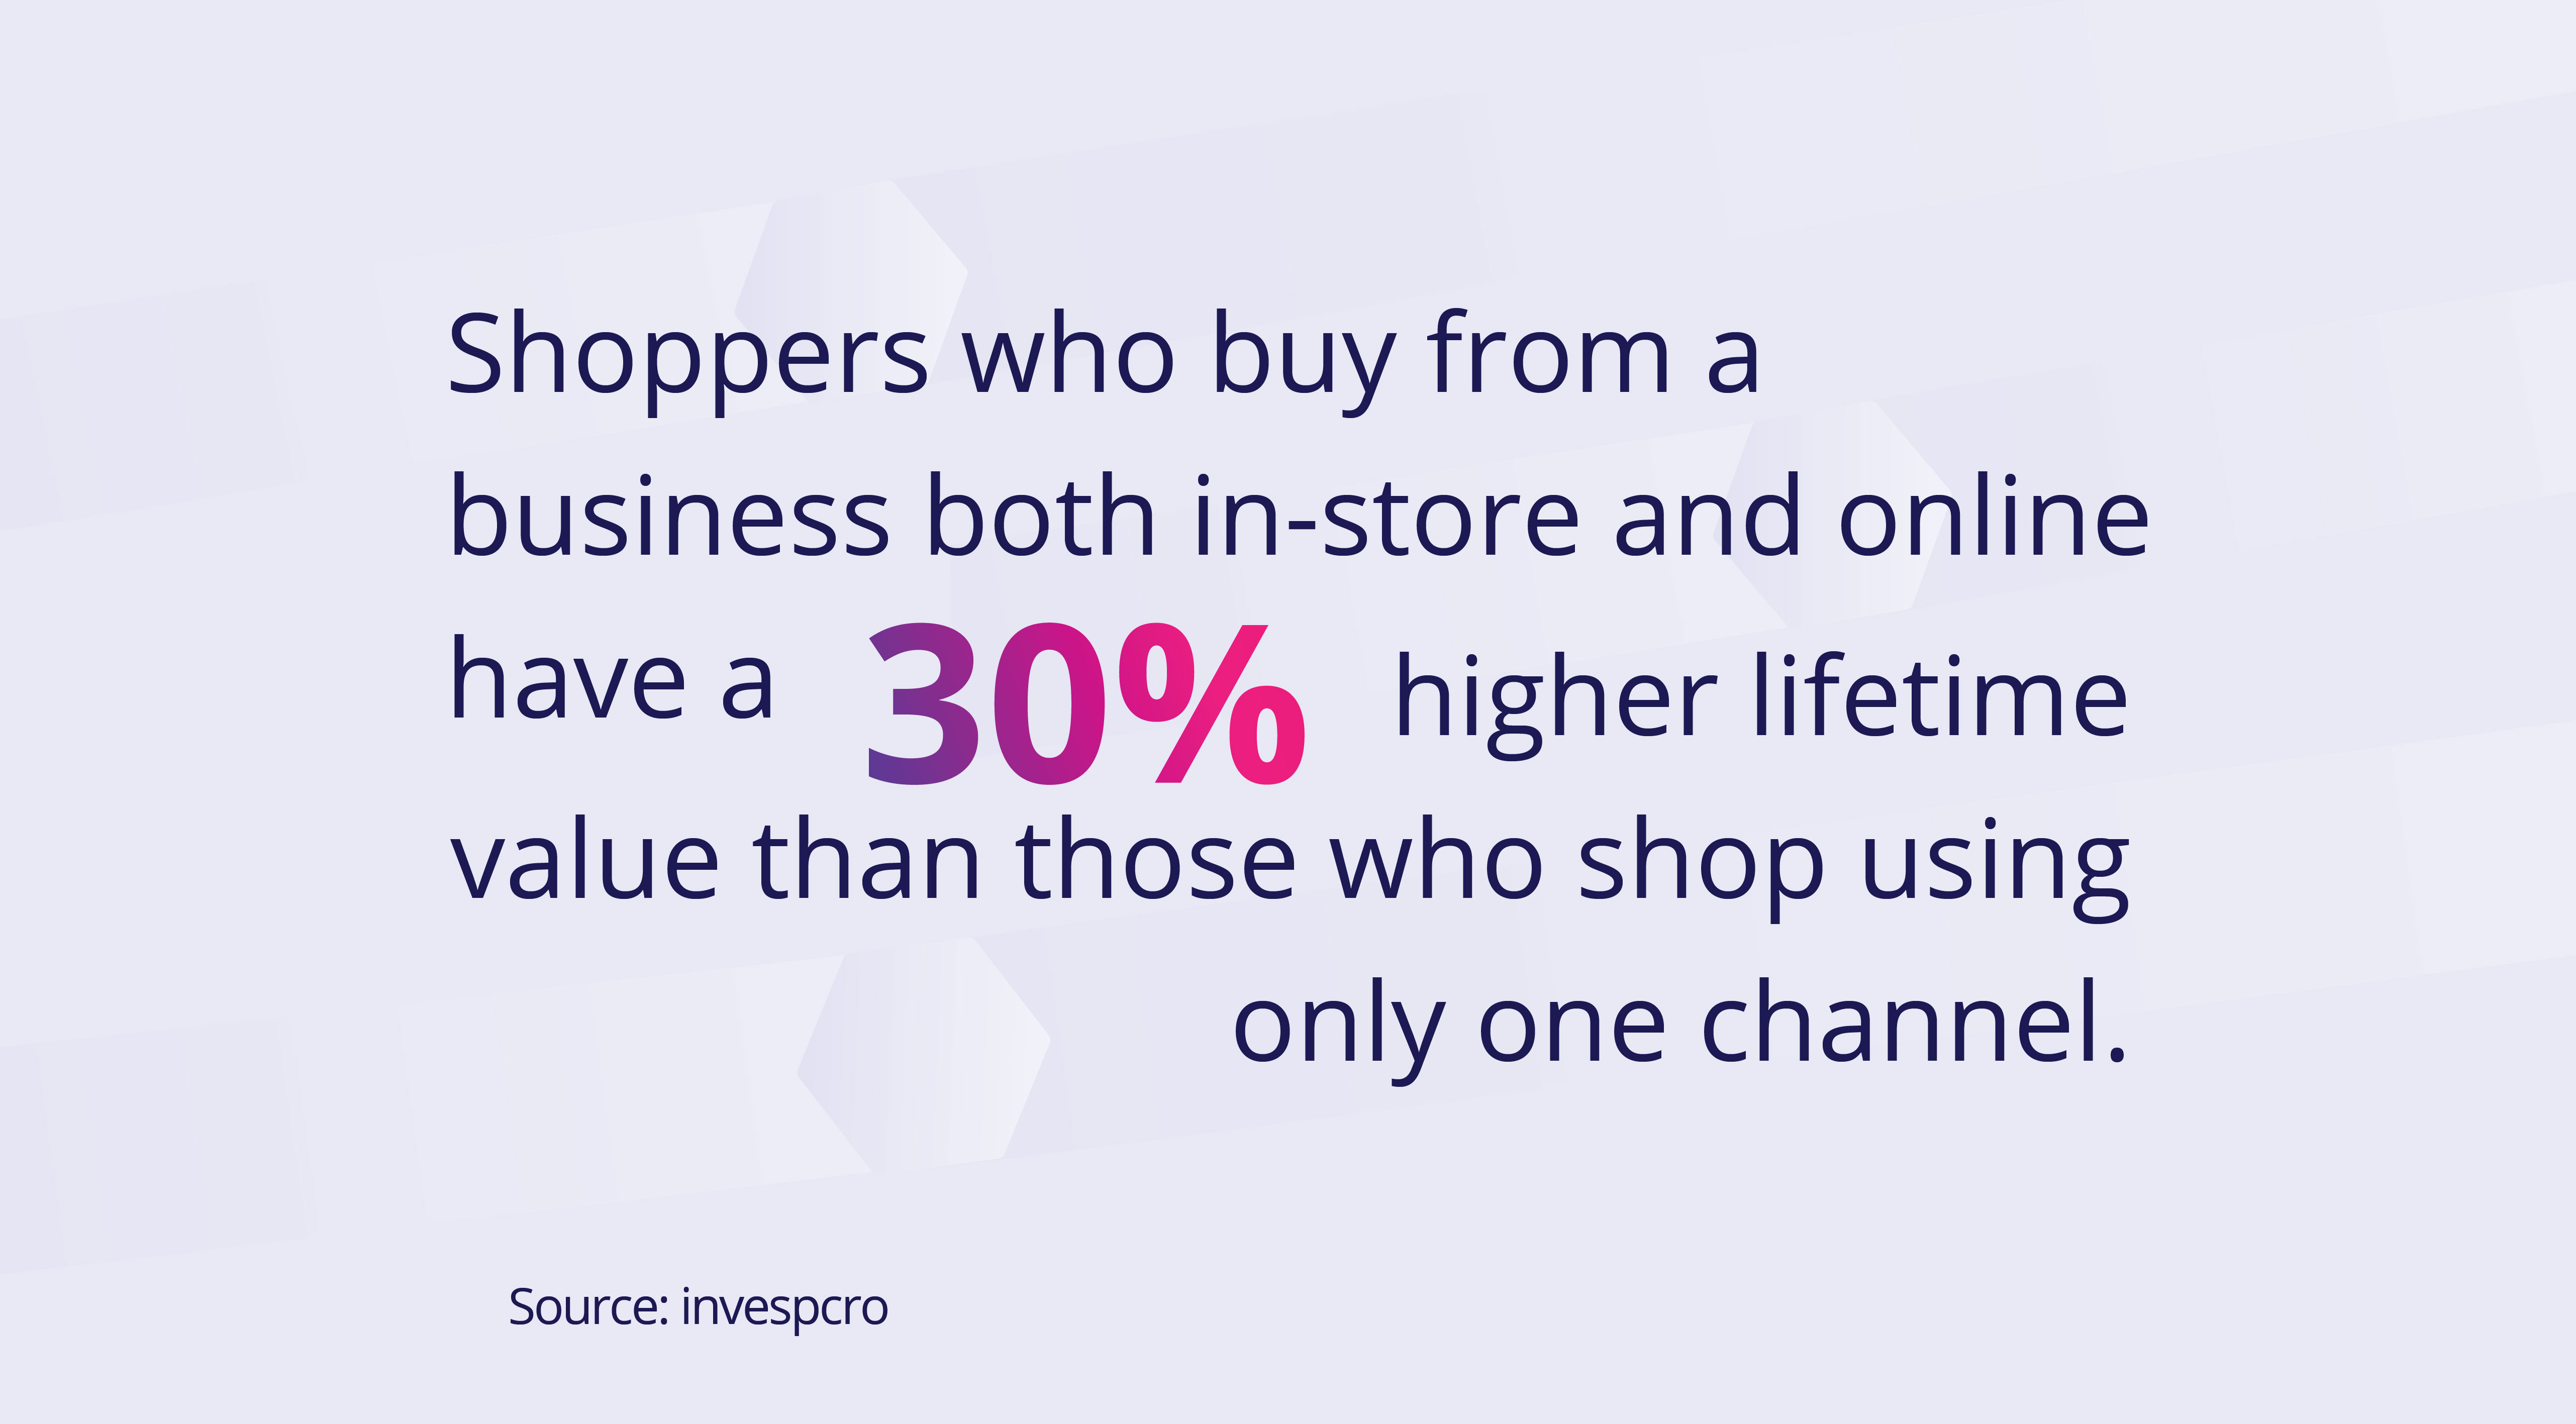 Lifetime value of Omnichannel shoppers